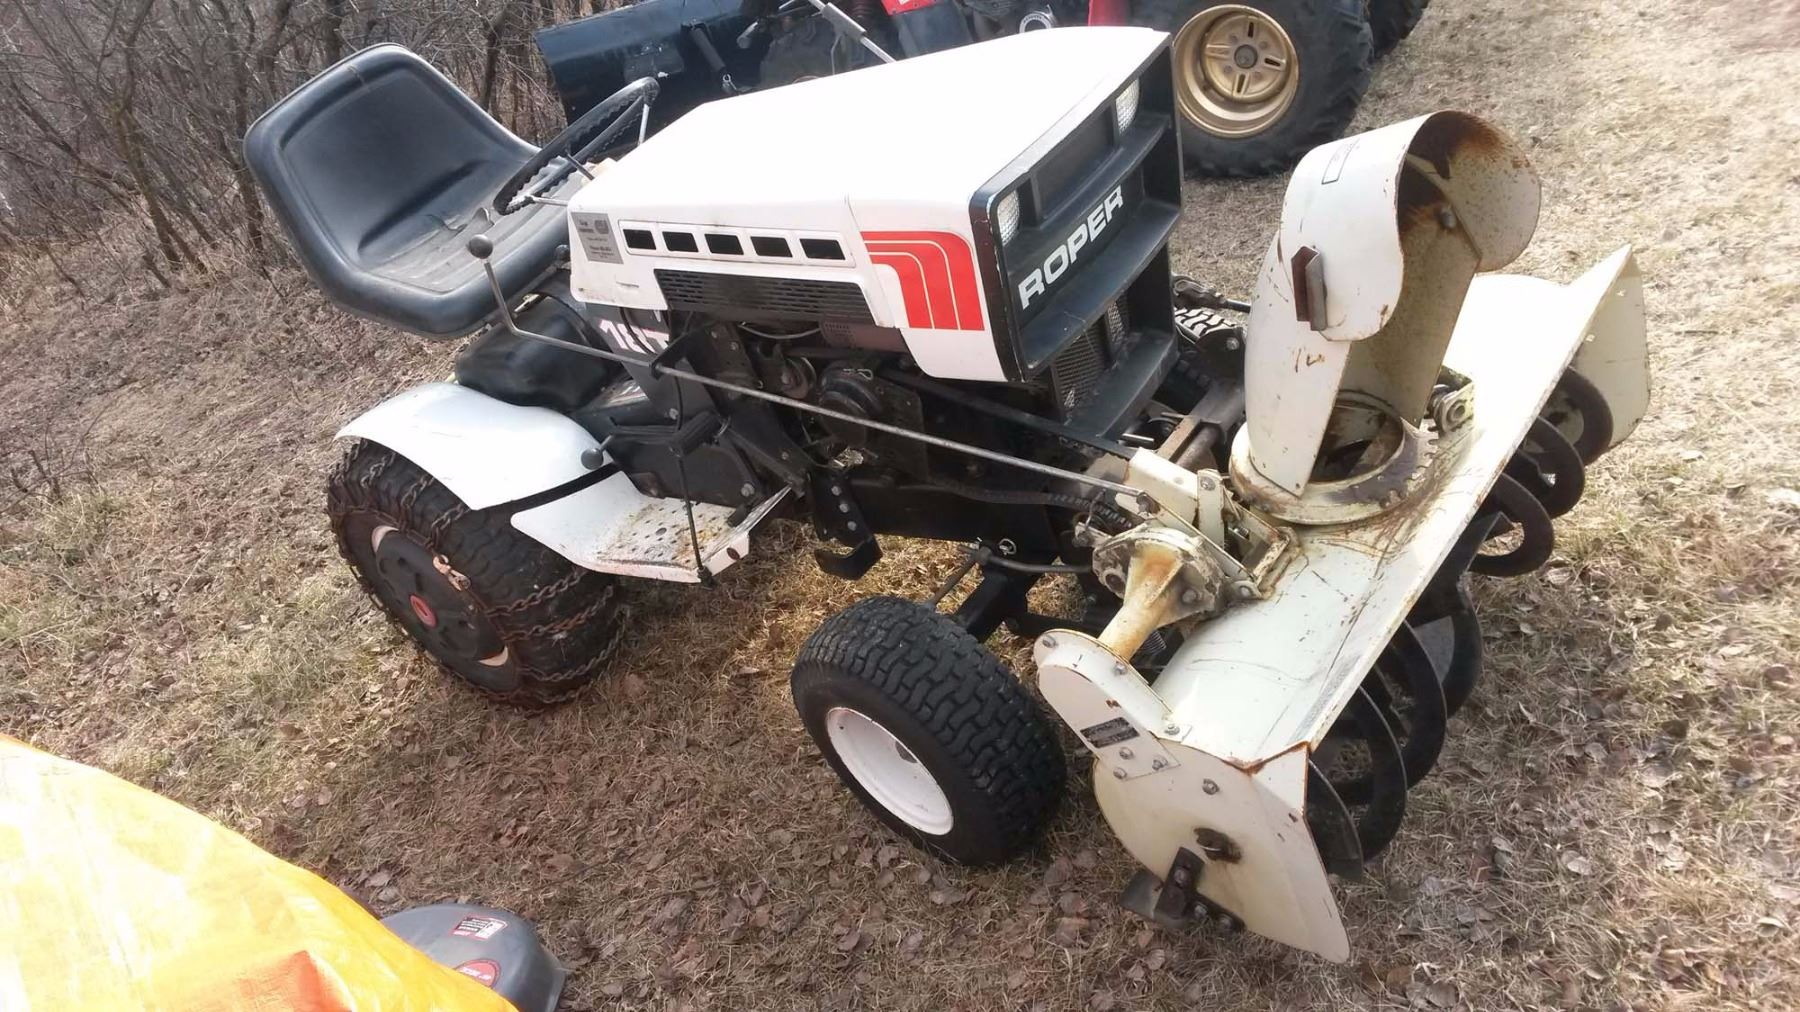 Roper 18t Riding Lawn Mower With Snow Blower Attachment